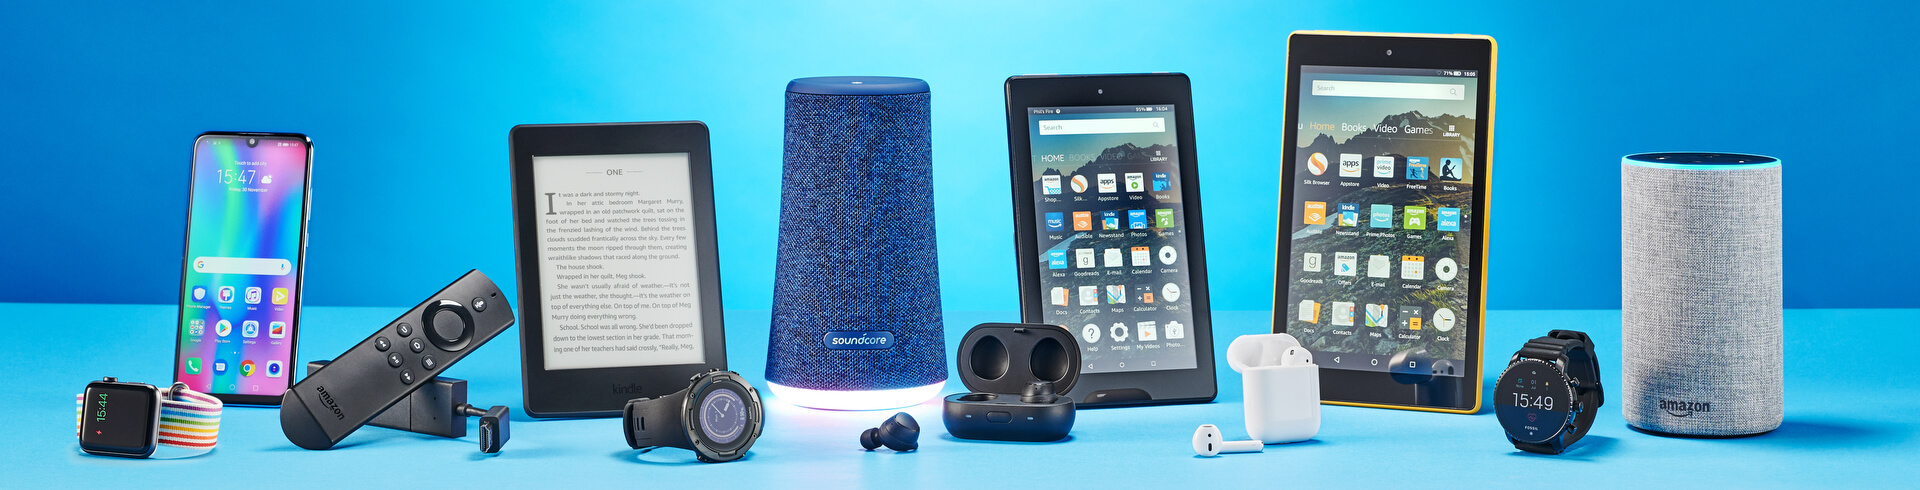 The best Amazon Prime Day deals in 2019 | TechRadar